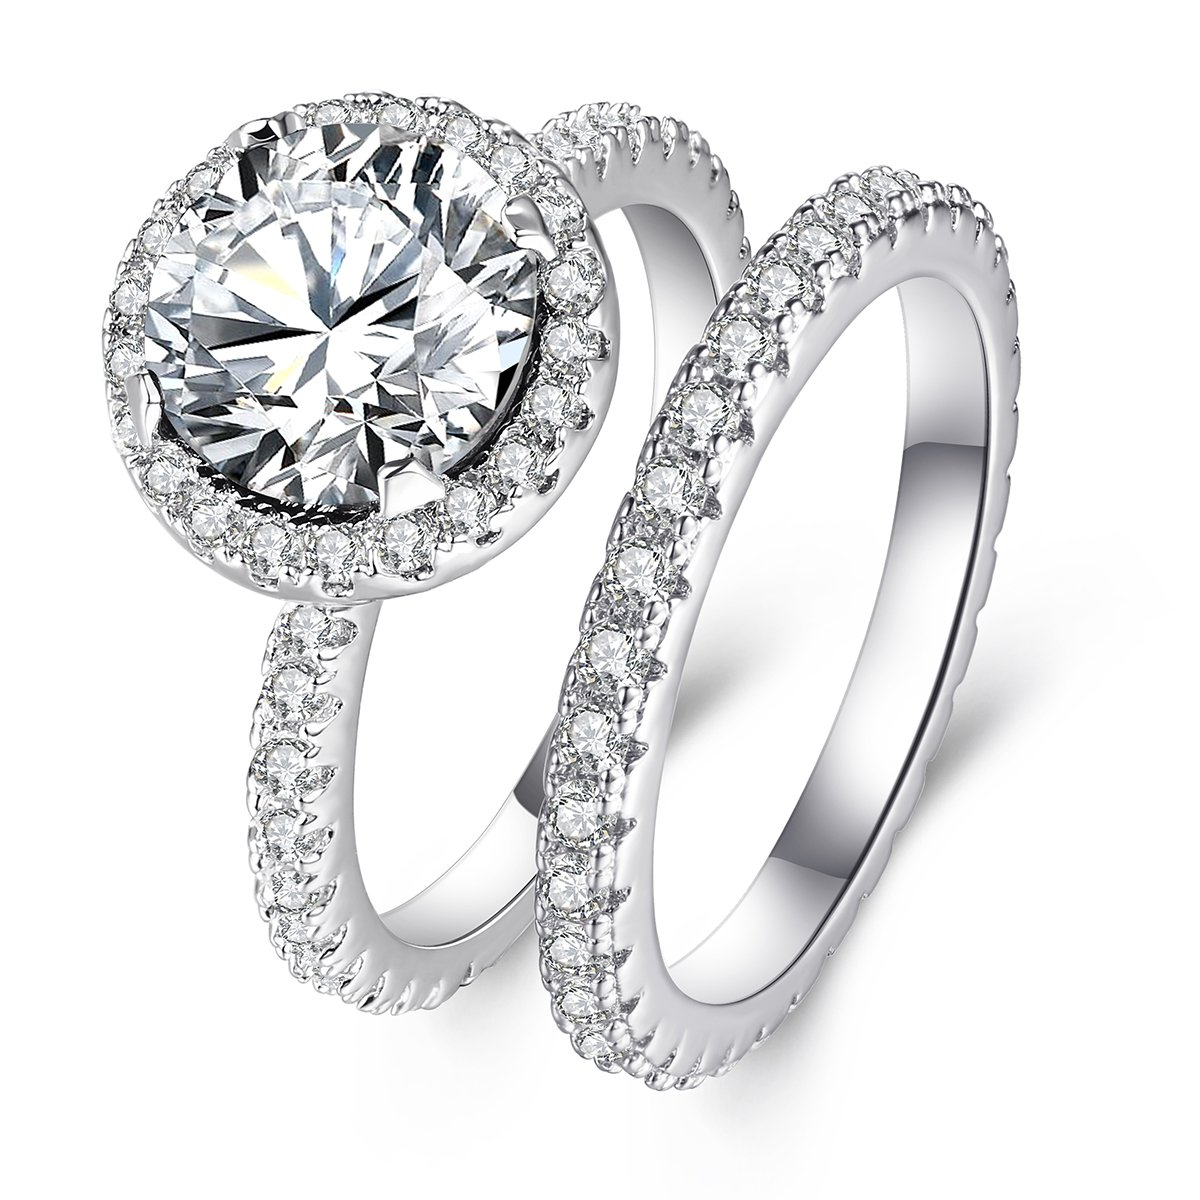 3 Carat Round CZ Solitaire Ring Set for Women, Halo Style White Gold Plated Size 7